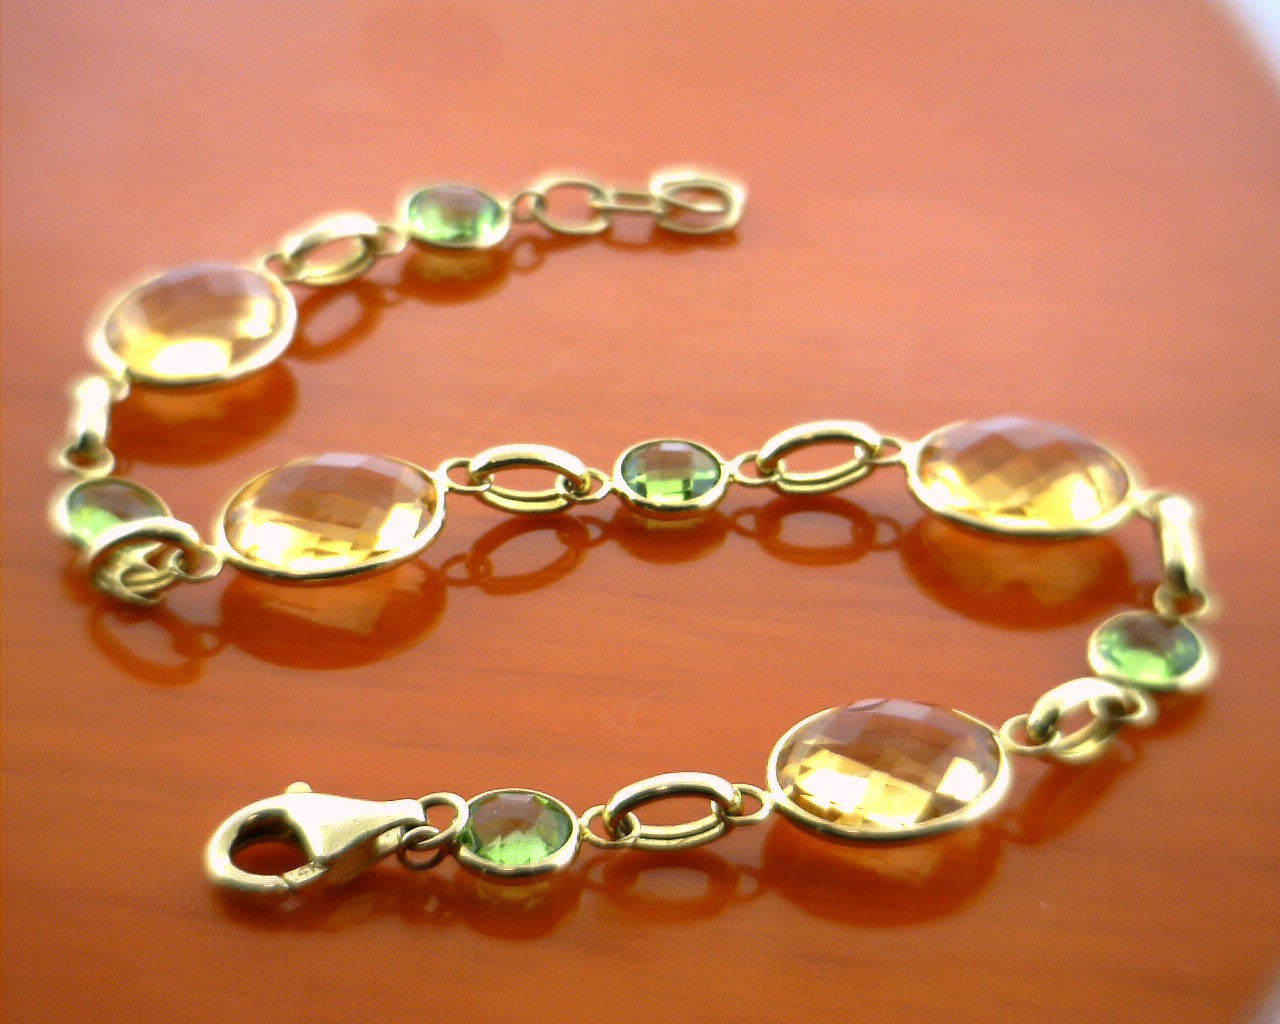 quartz and natural singapore citrine crystals bracelet